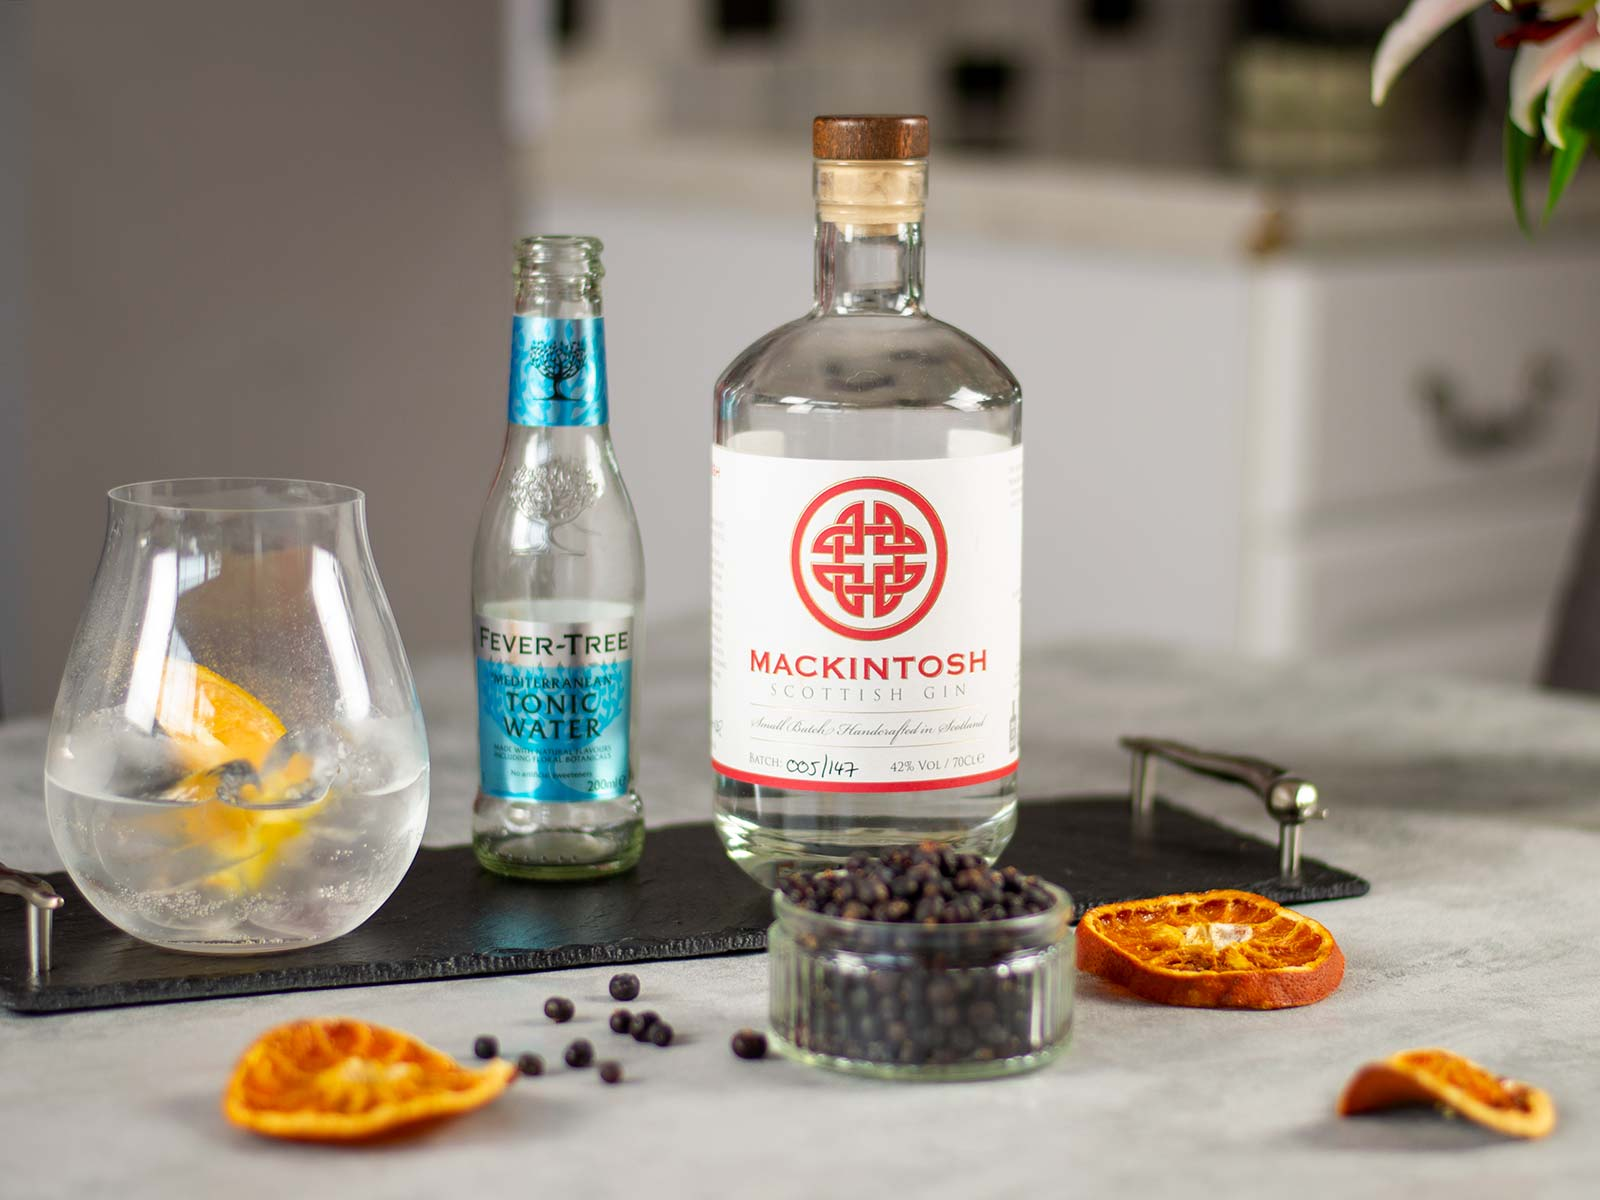 Mackintosh Gin bottle, Fever-Tree Mediterranean Tonic Water, and a gin and tonic.